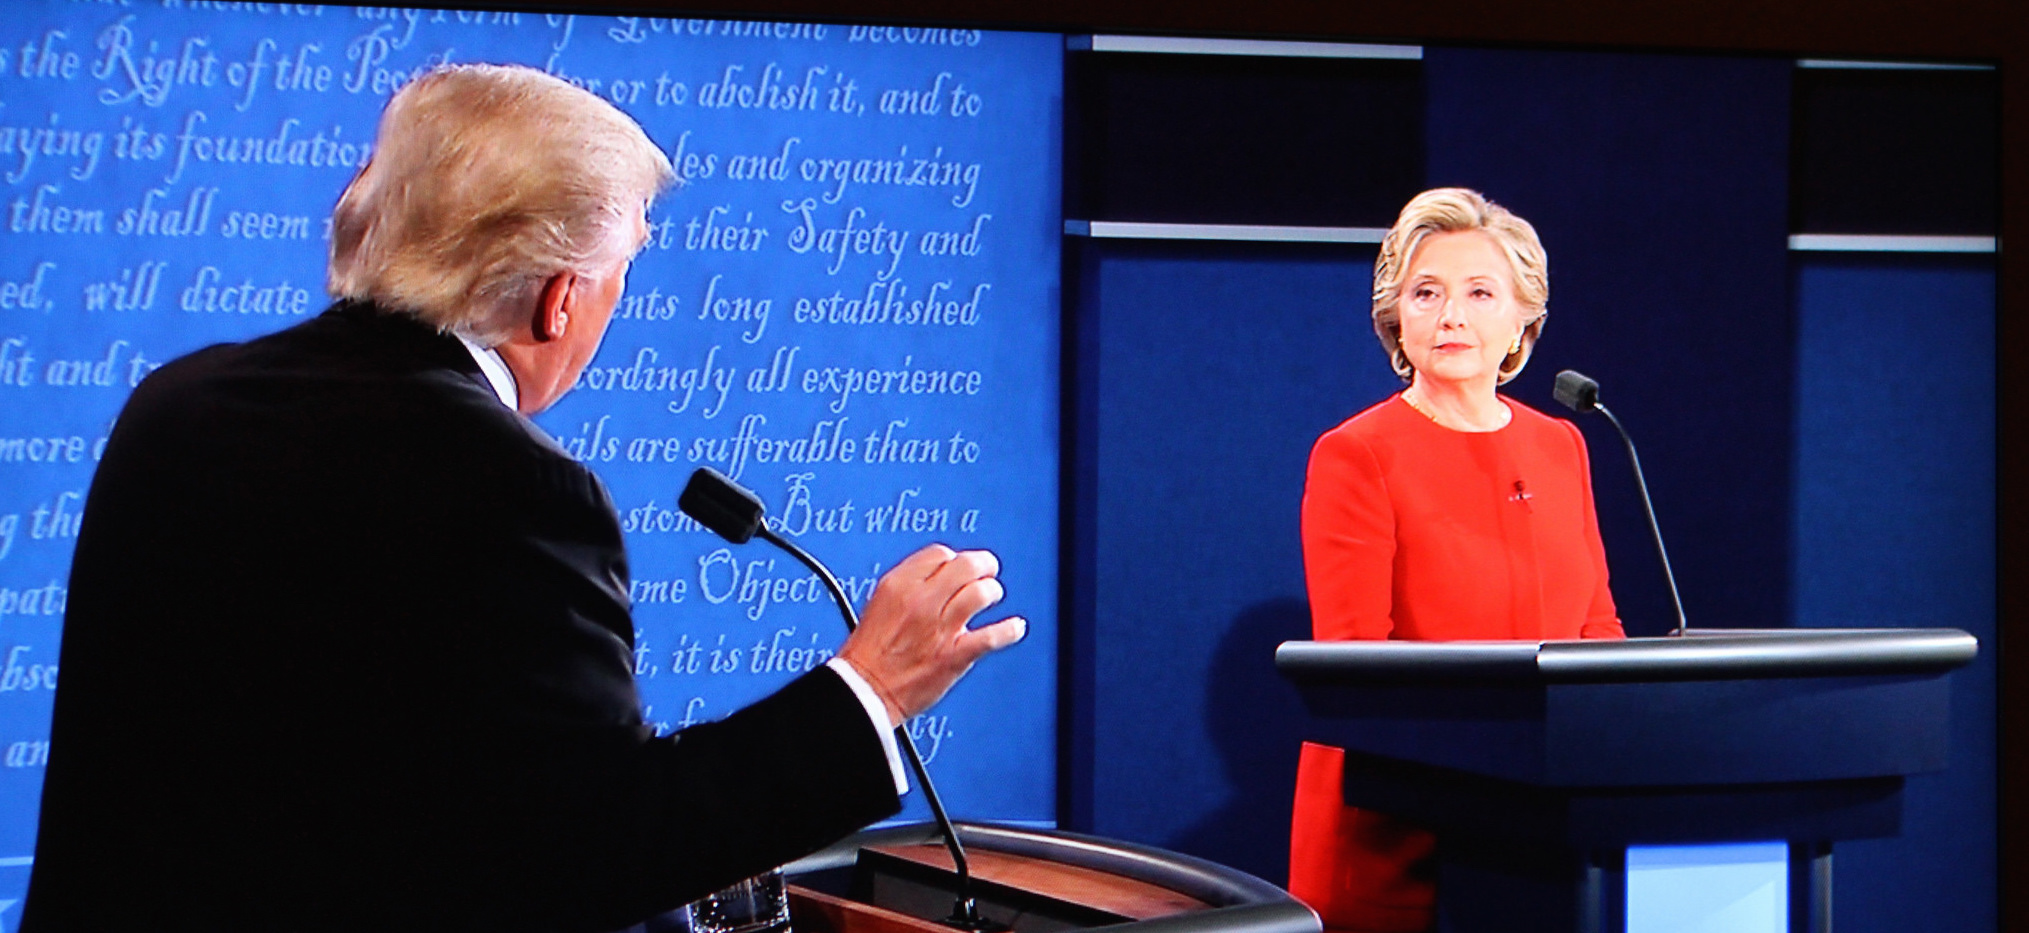 Donald Trump and Hillary Clinton during the first presidential debate. Credit: billy3001/Flickr, CC BY 2.0